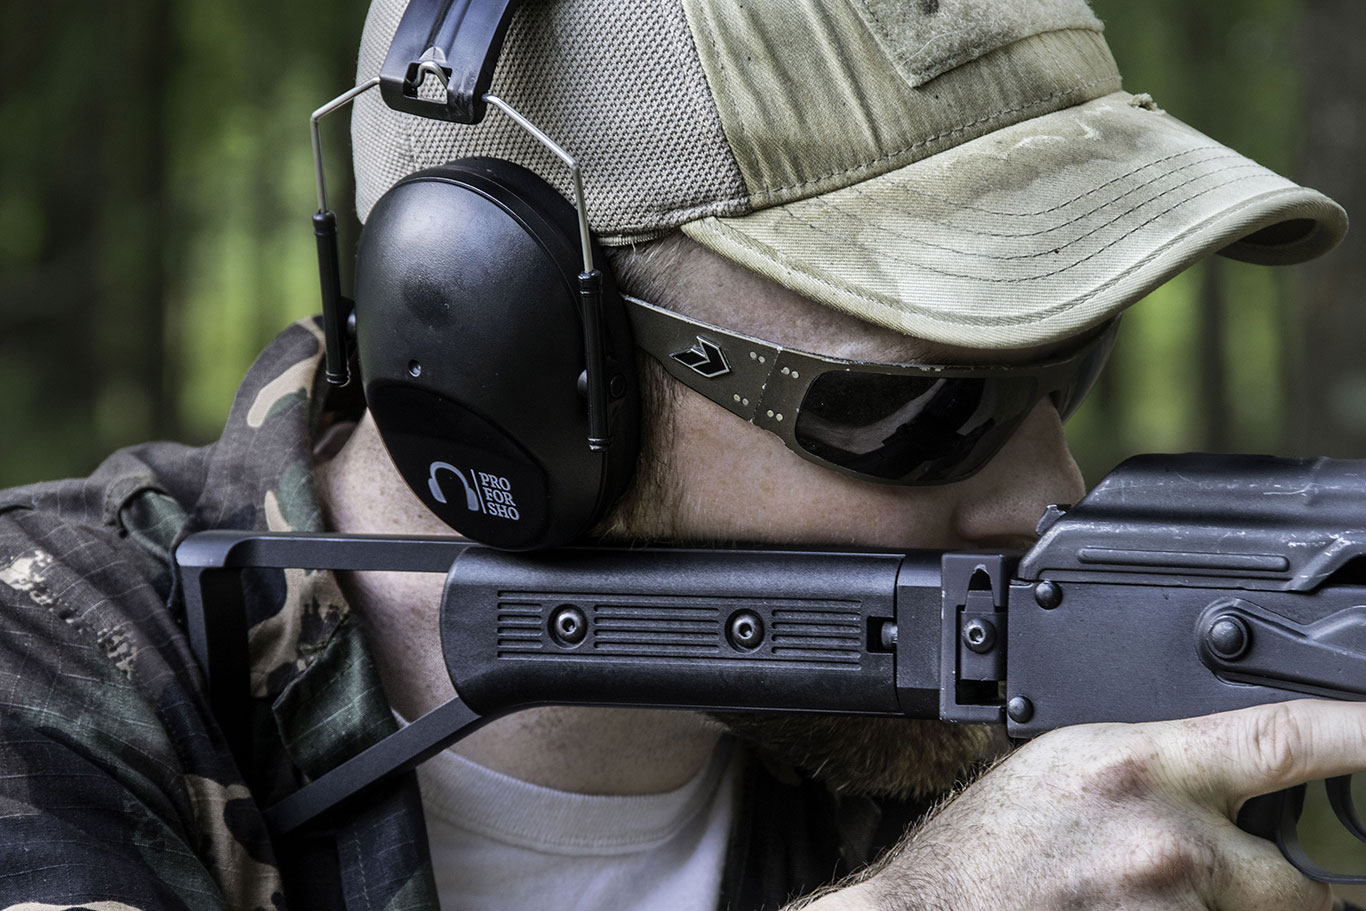 The muffs are low enough profile to allow the Author to get a proper sight picture with his compact Draco AKM SBR'd carbine.